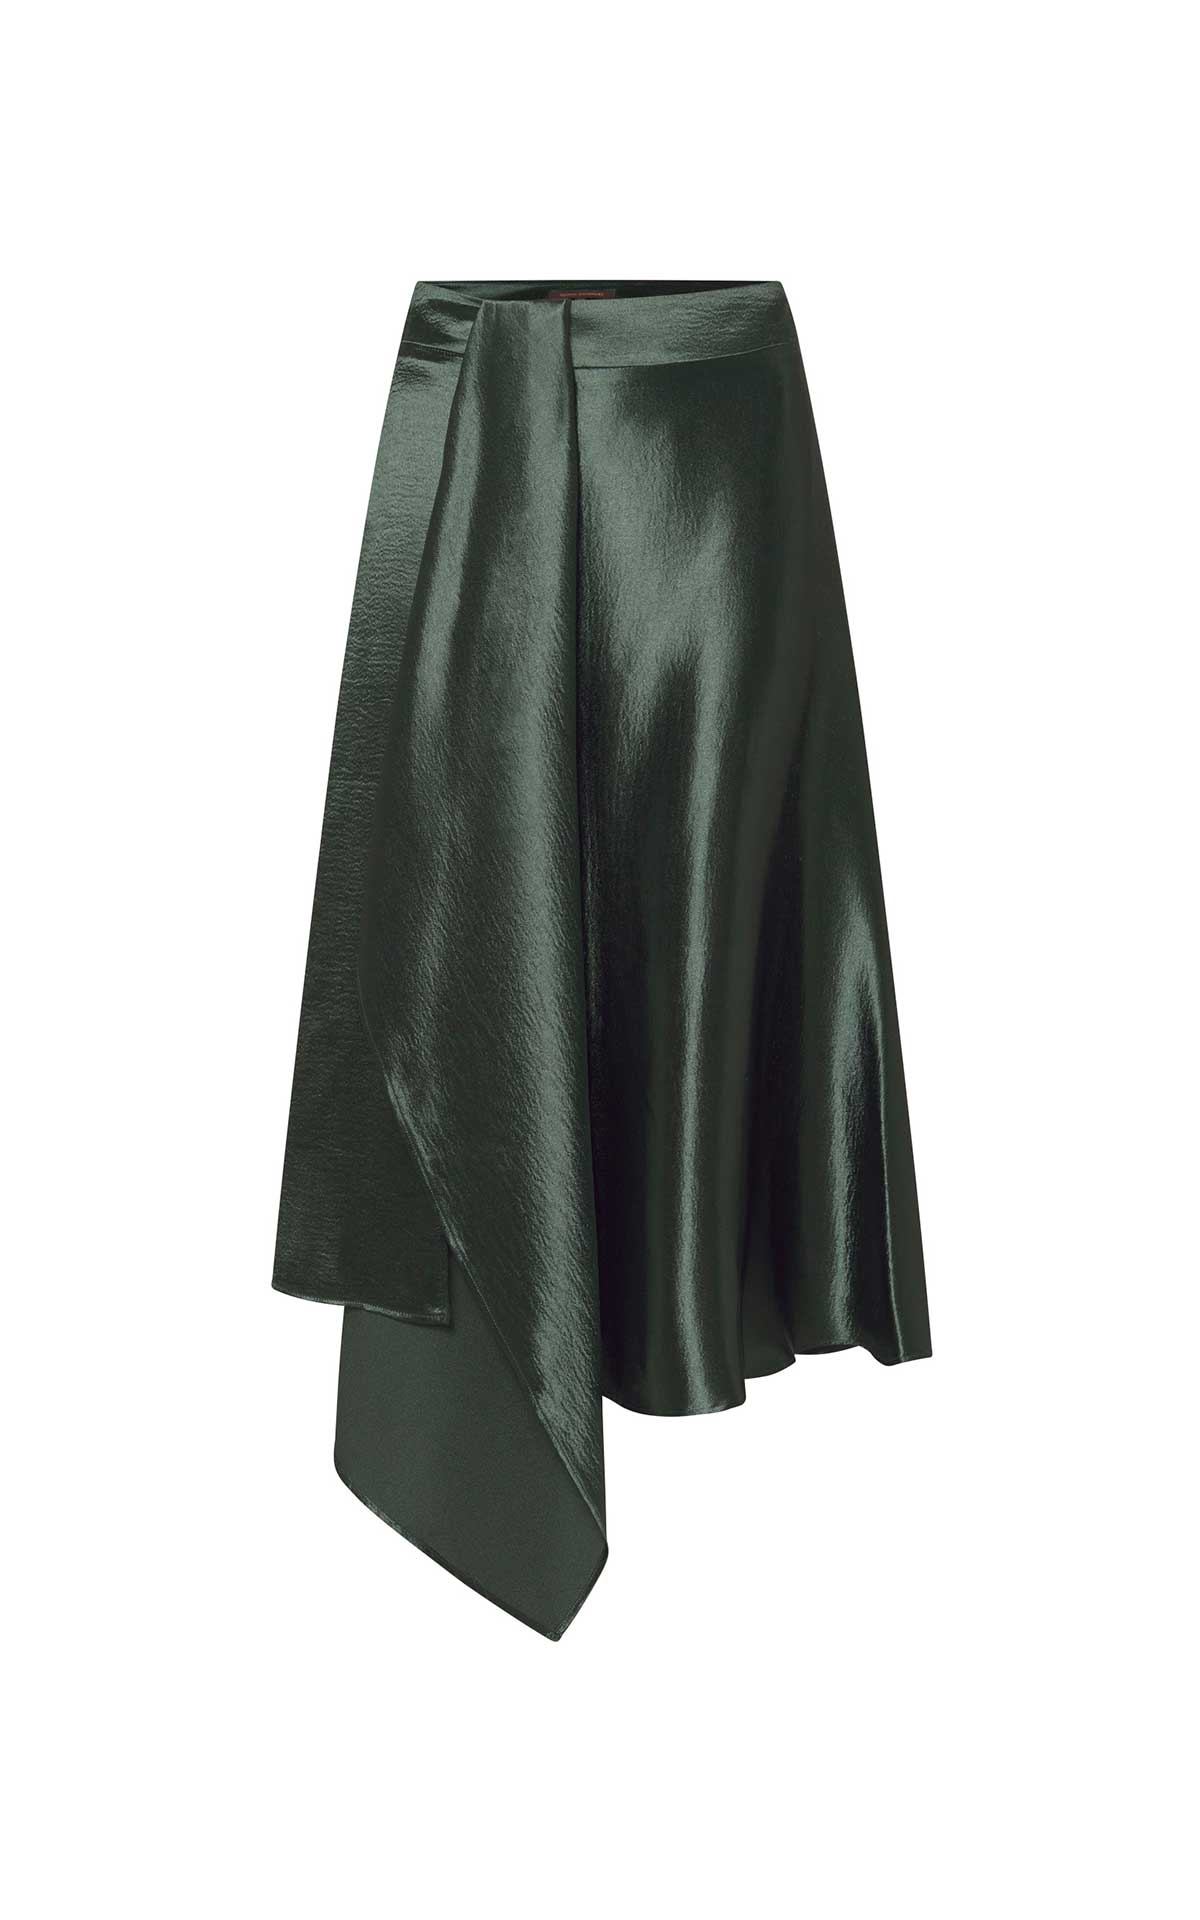 Green satin skirt Adolfo Dominguez